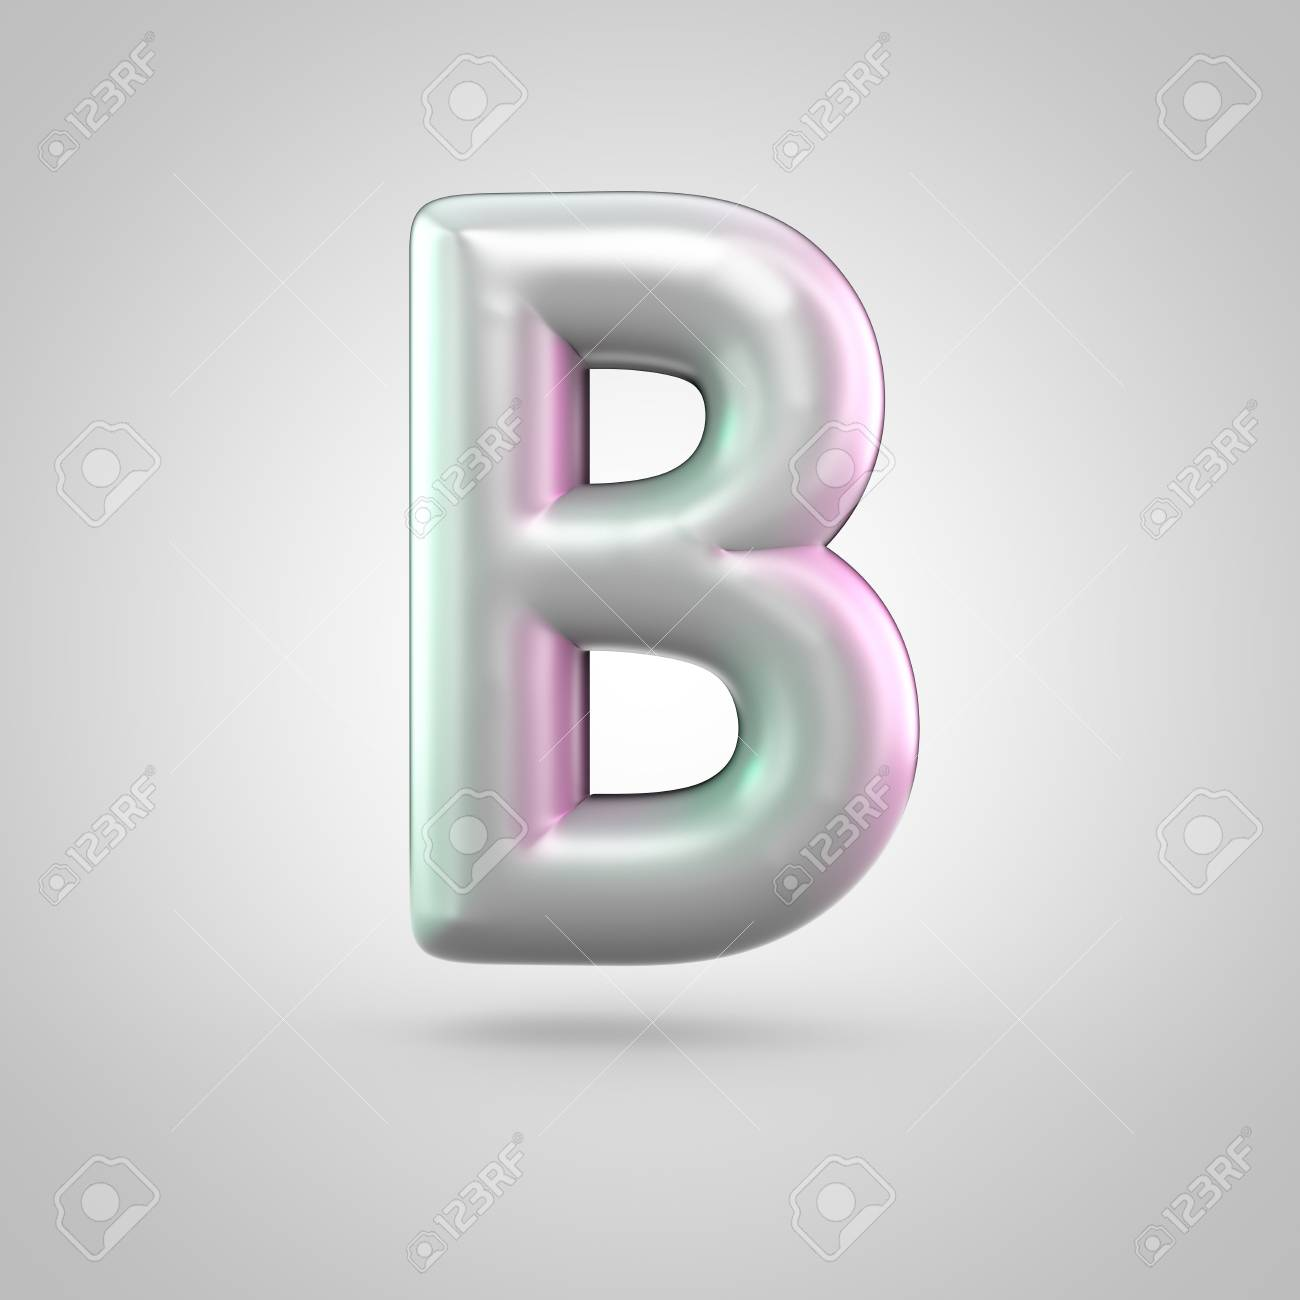 Glossy Perl Letter B Uppercase 3d Render Of Bubble Font With